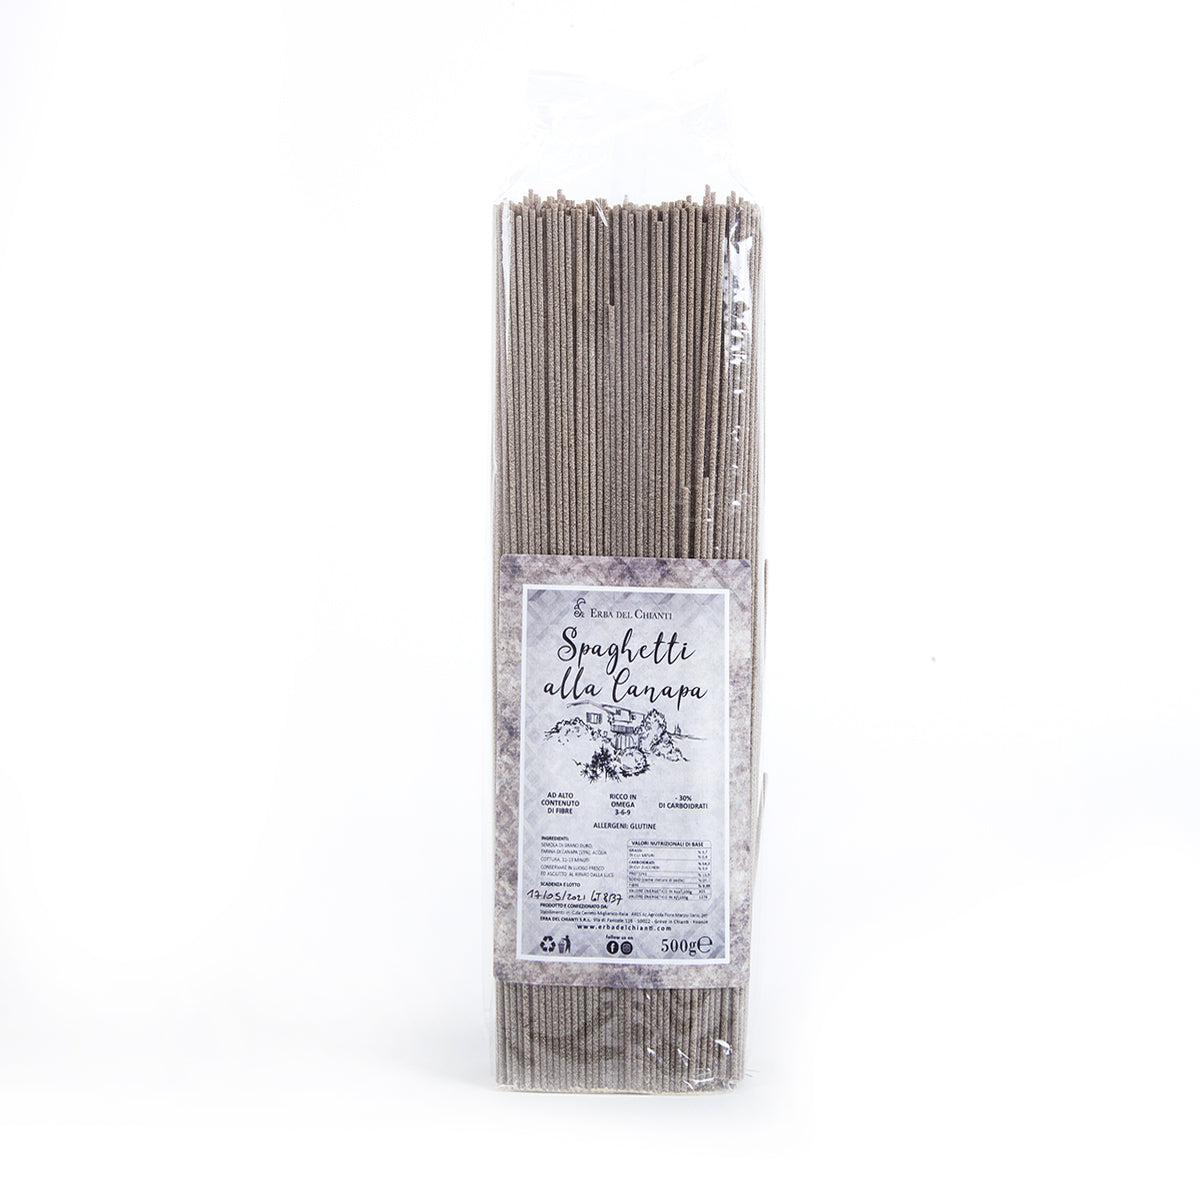 Organic Hemp Spaghetti by Erba del Chianti | Pop-Up